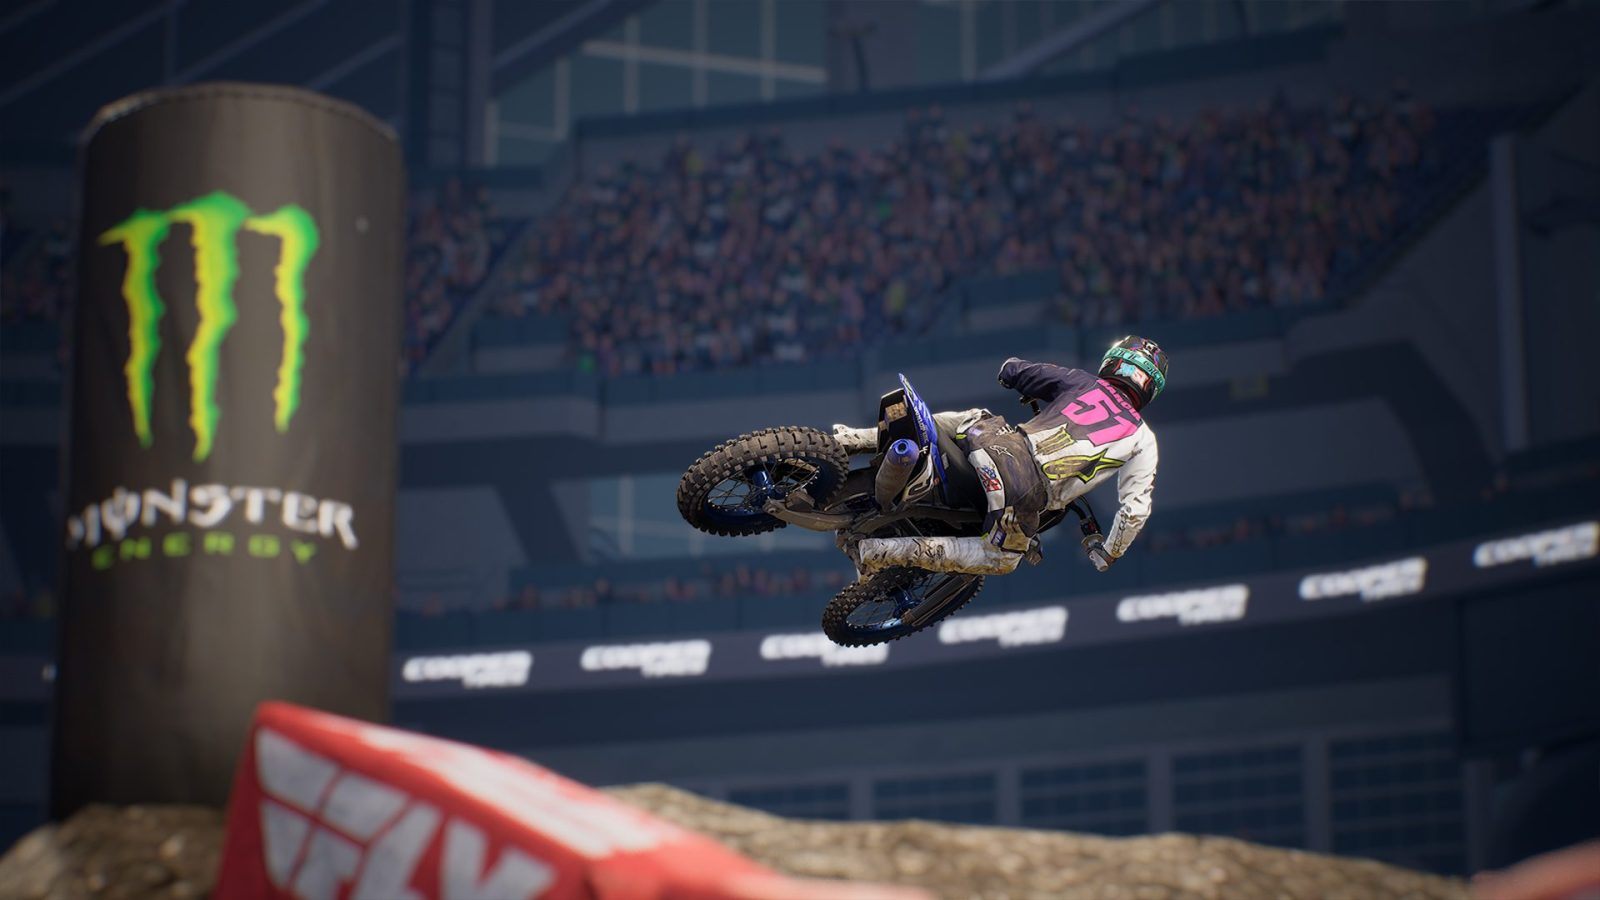 'Monster Energy Supercross 3' coming to Google Stadia in February